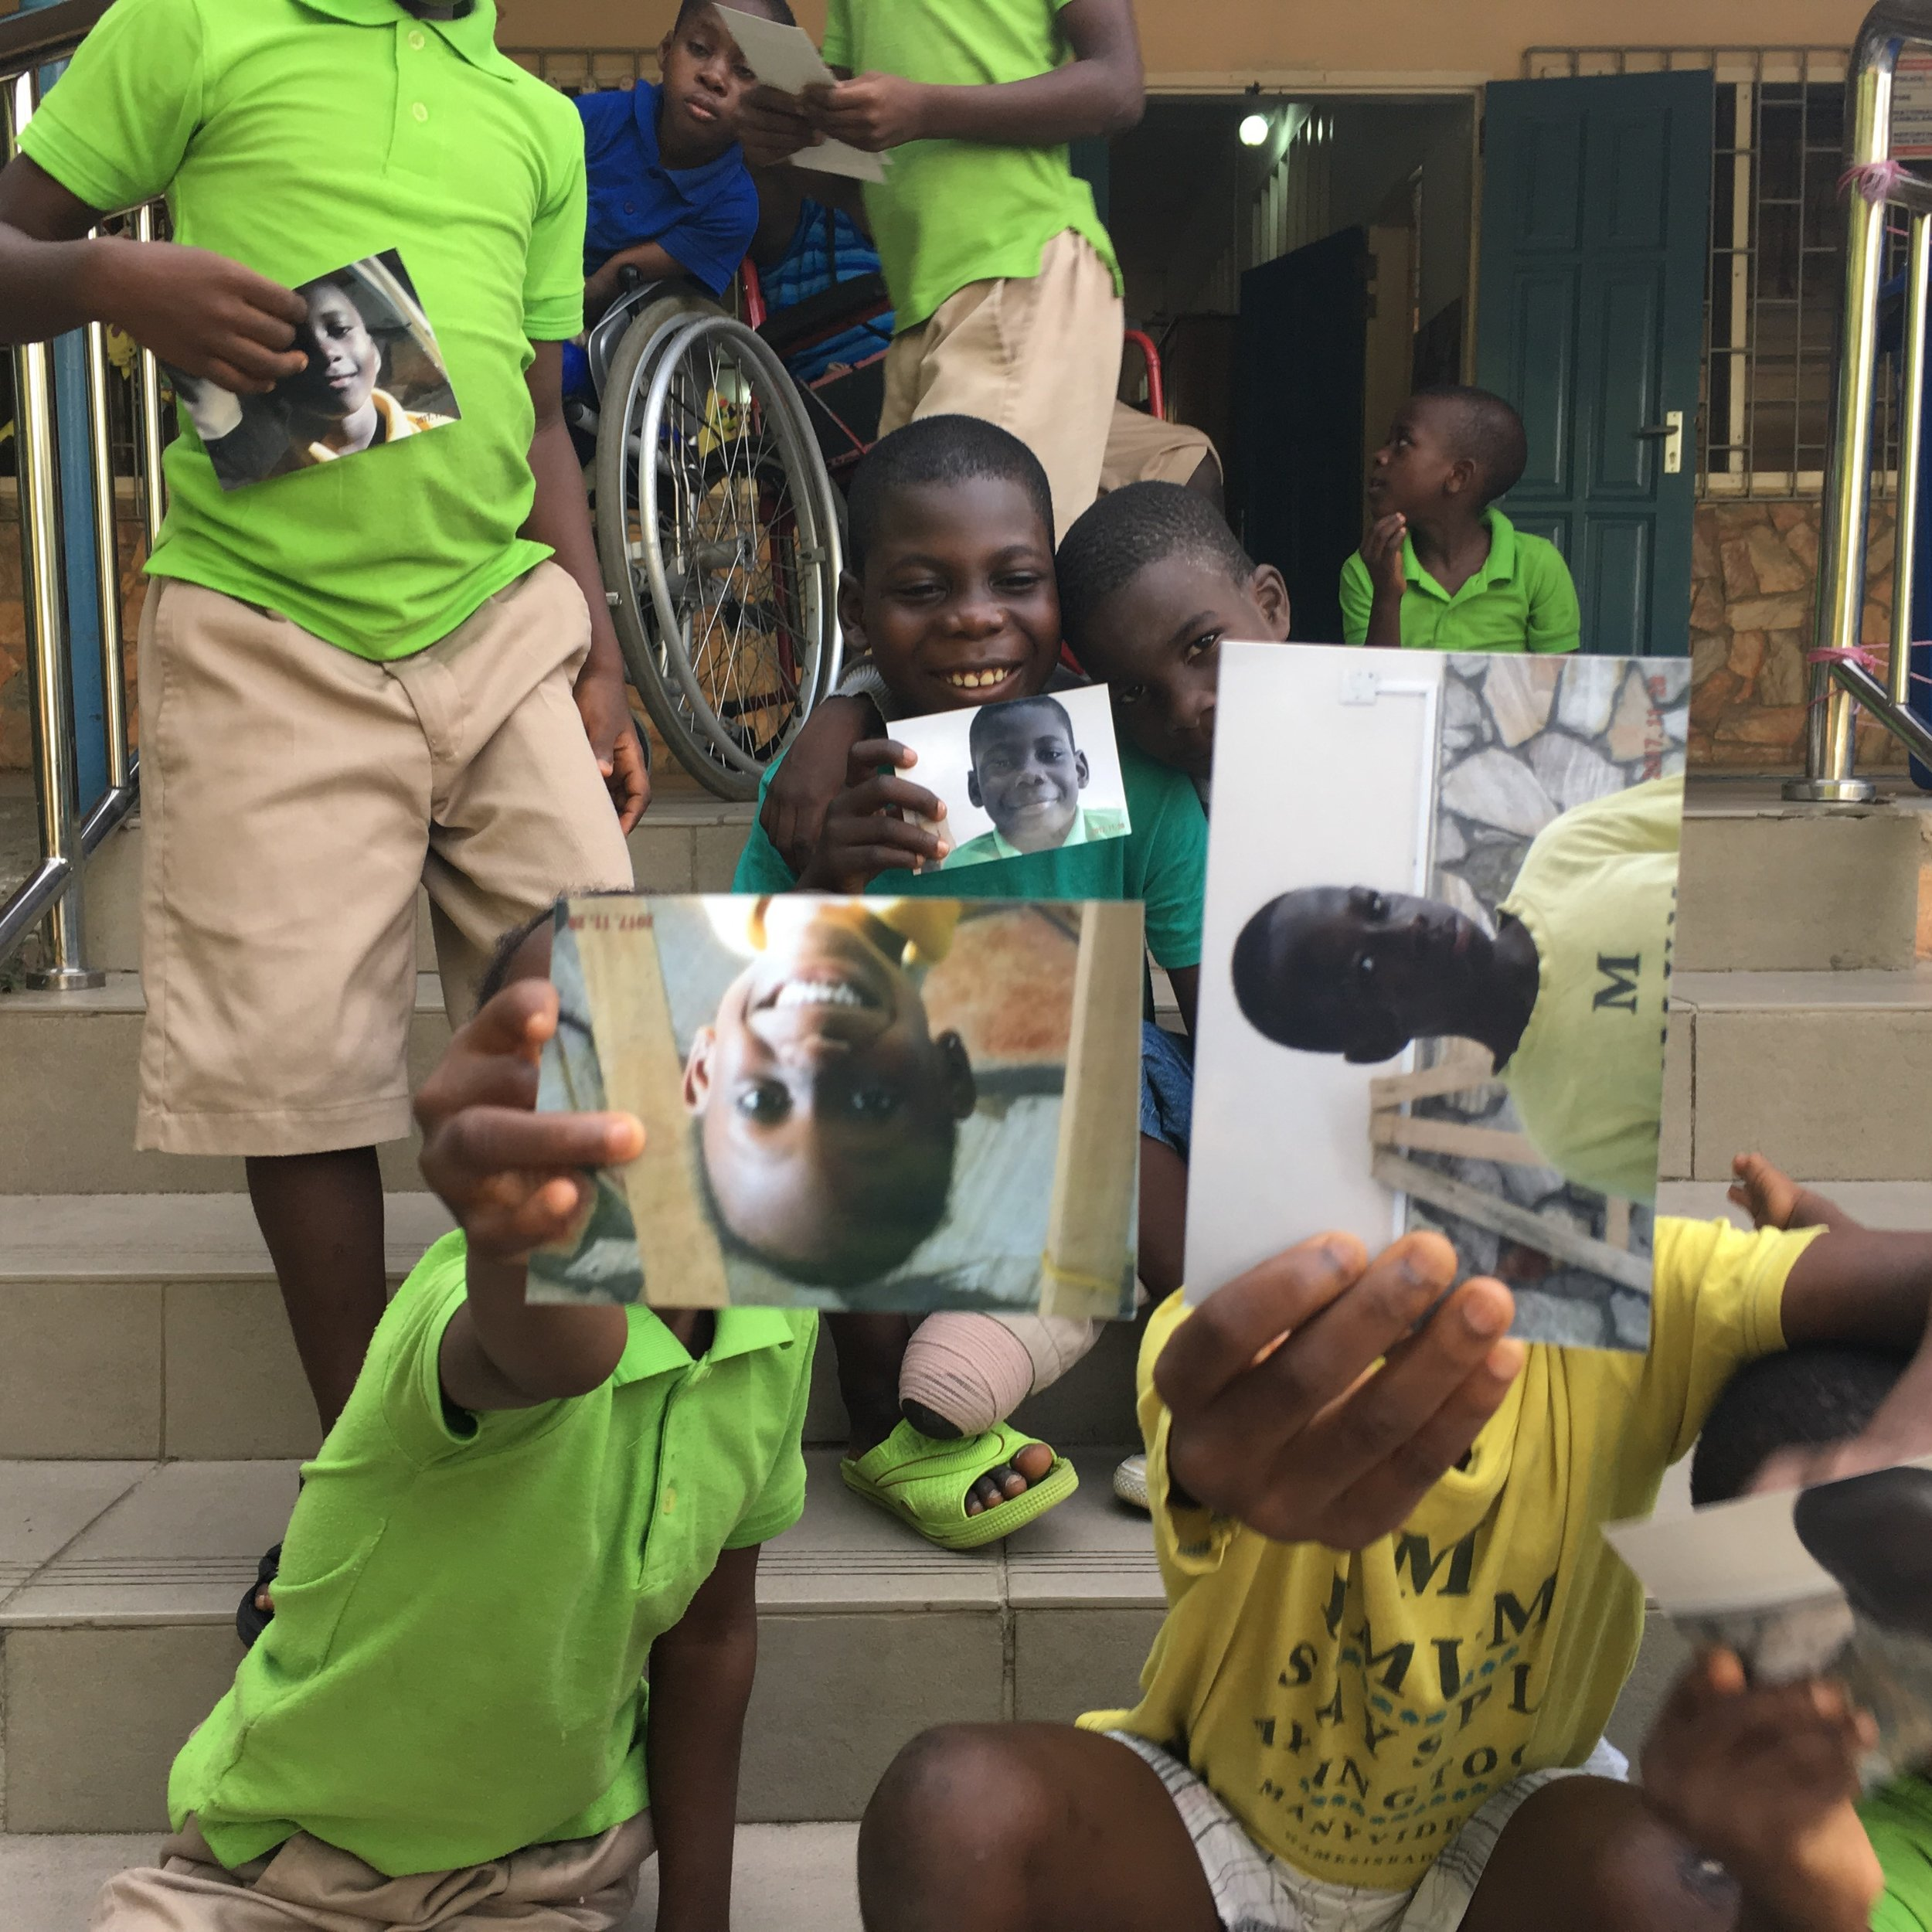 Gold Level Donation      Grant 50 Children Orthopedic Care & Devices - $25,000    Provide orthopedic care, orthopedic devices, education and room and board for fifty of the children at a rehabilitation hospital.